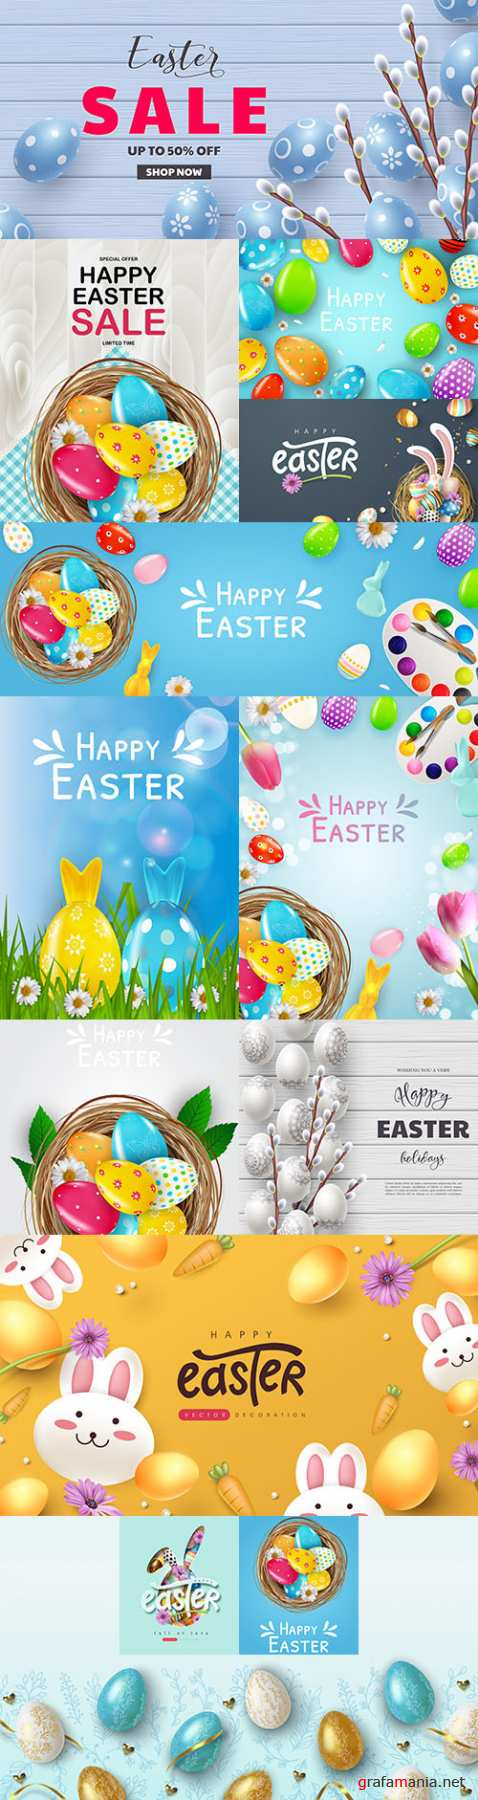 Happy Easter background and design banner with colorful eggs 4